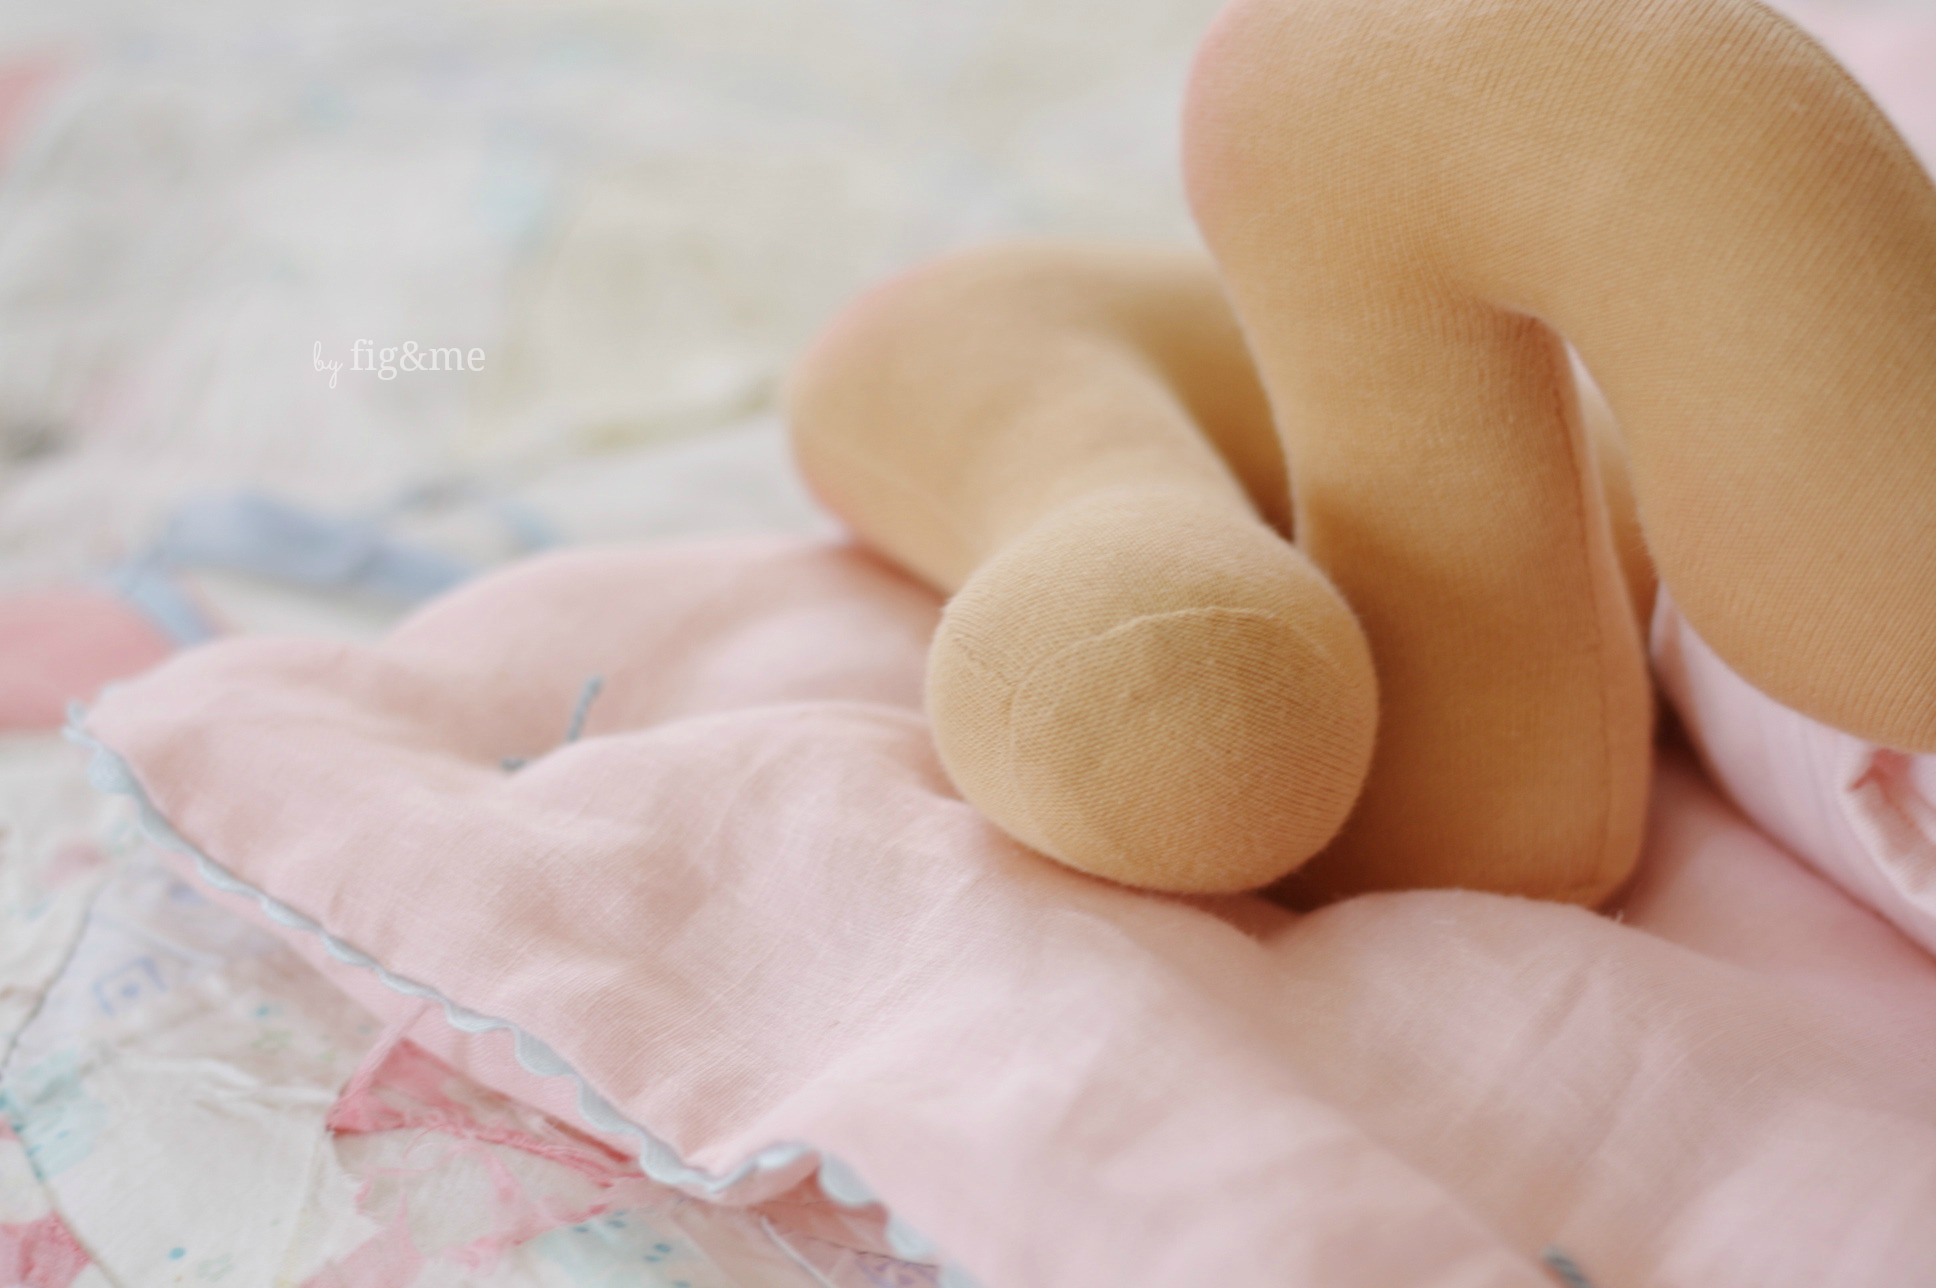 Little dolly feet, by Fig&me